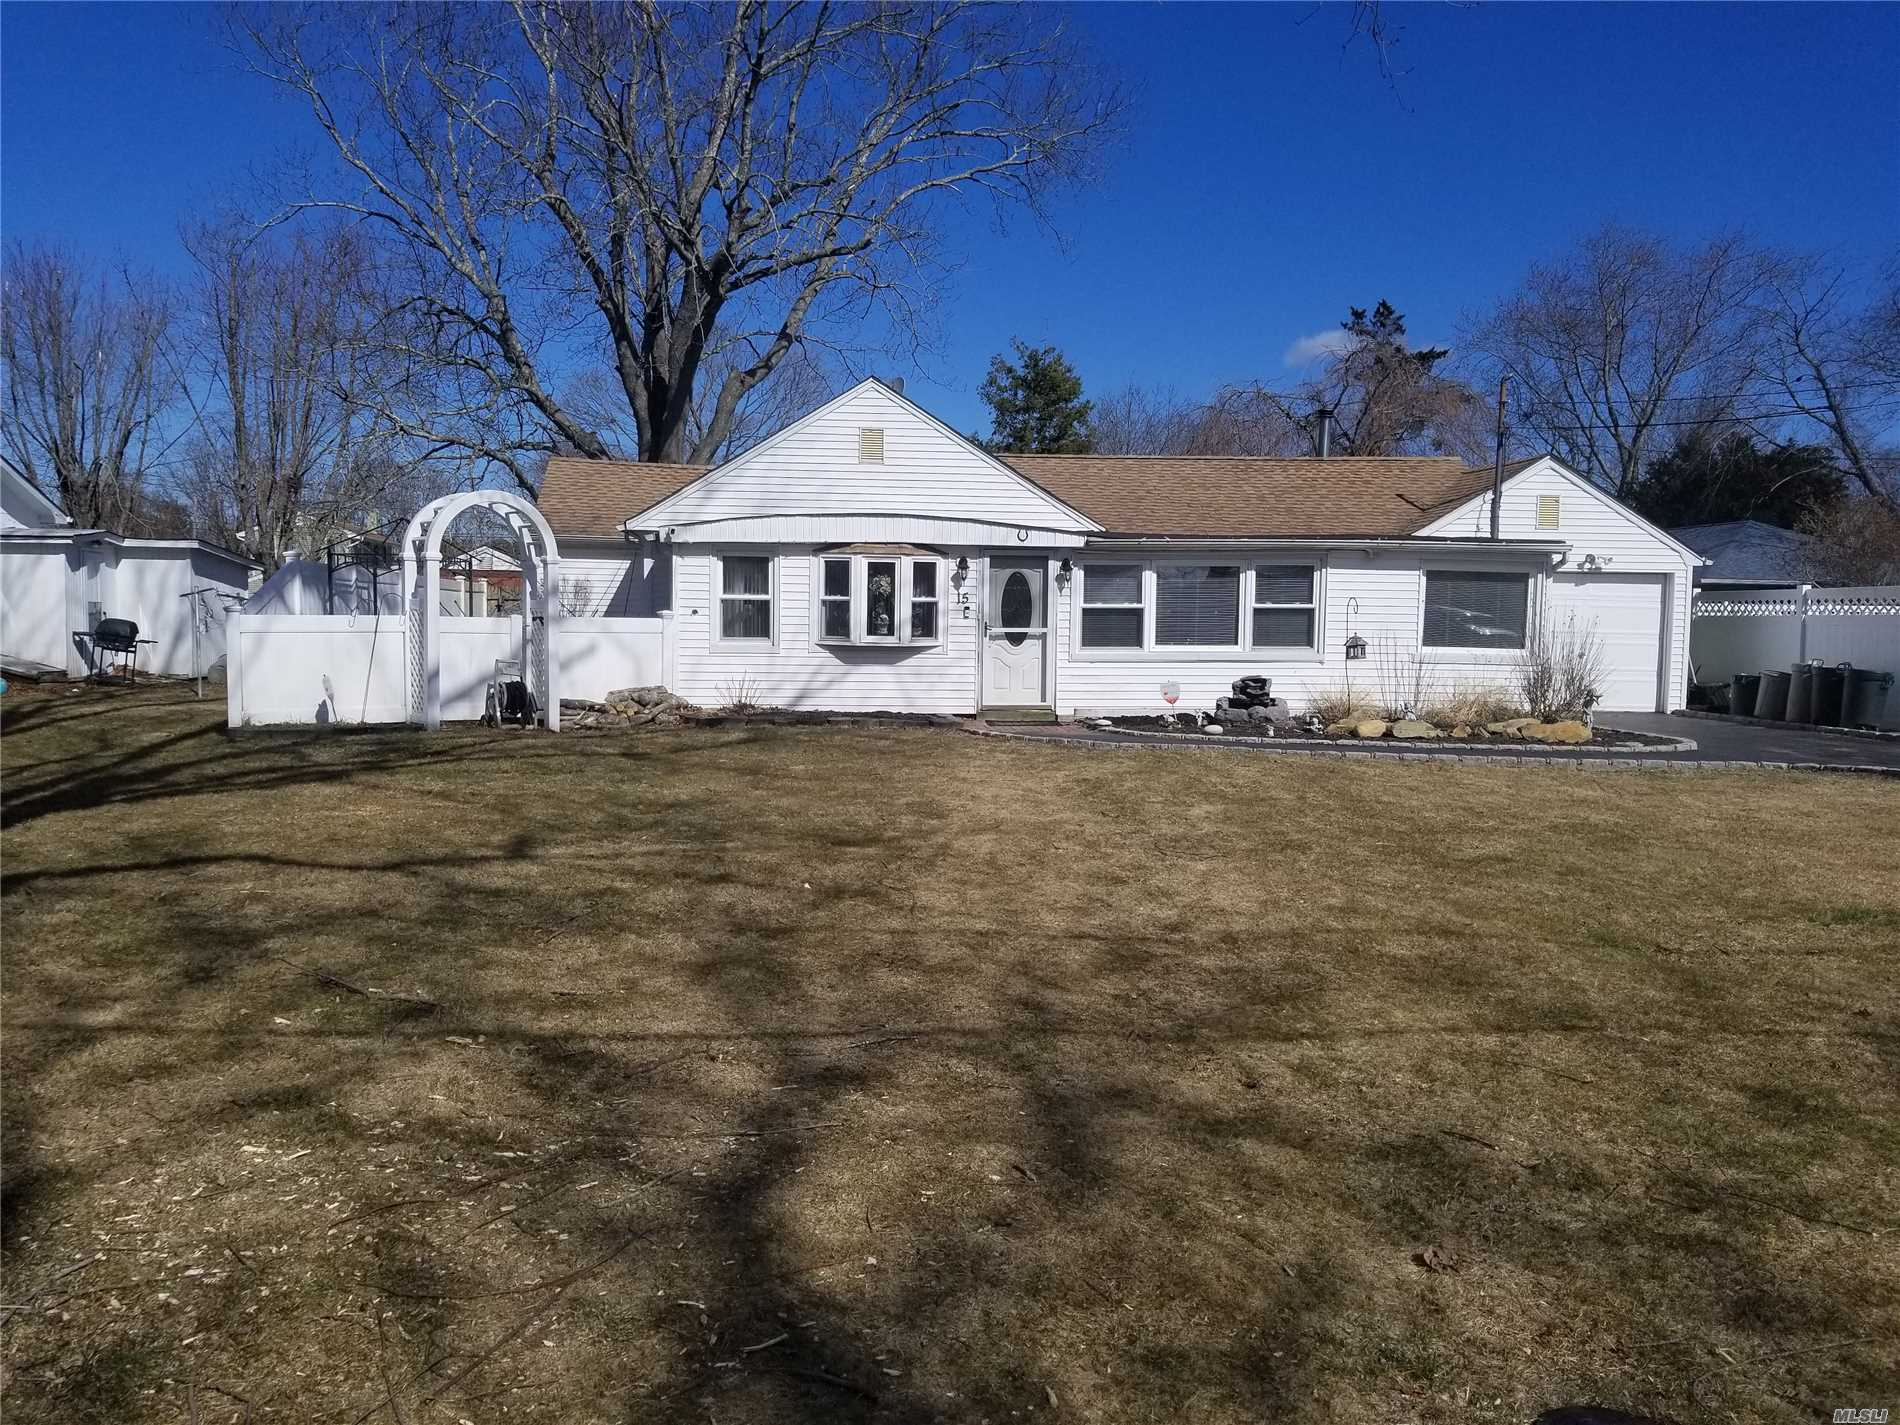 Mint Spacious Ranch, clean and ready for you, burner 7 years old, freshly painted, 2 of the bedrooms are master size with walk in closet, Private dock rights are available, fishing docks and beaches, private backyard New PVC fence, electric is new, new washer and dryer. Peaceful Setting